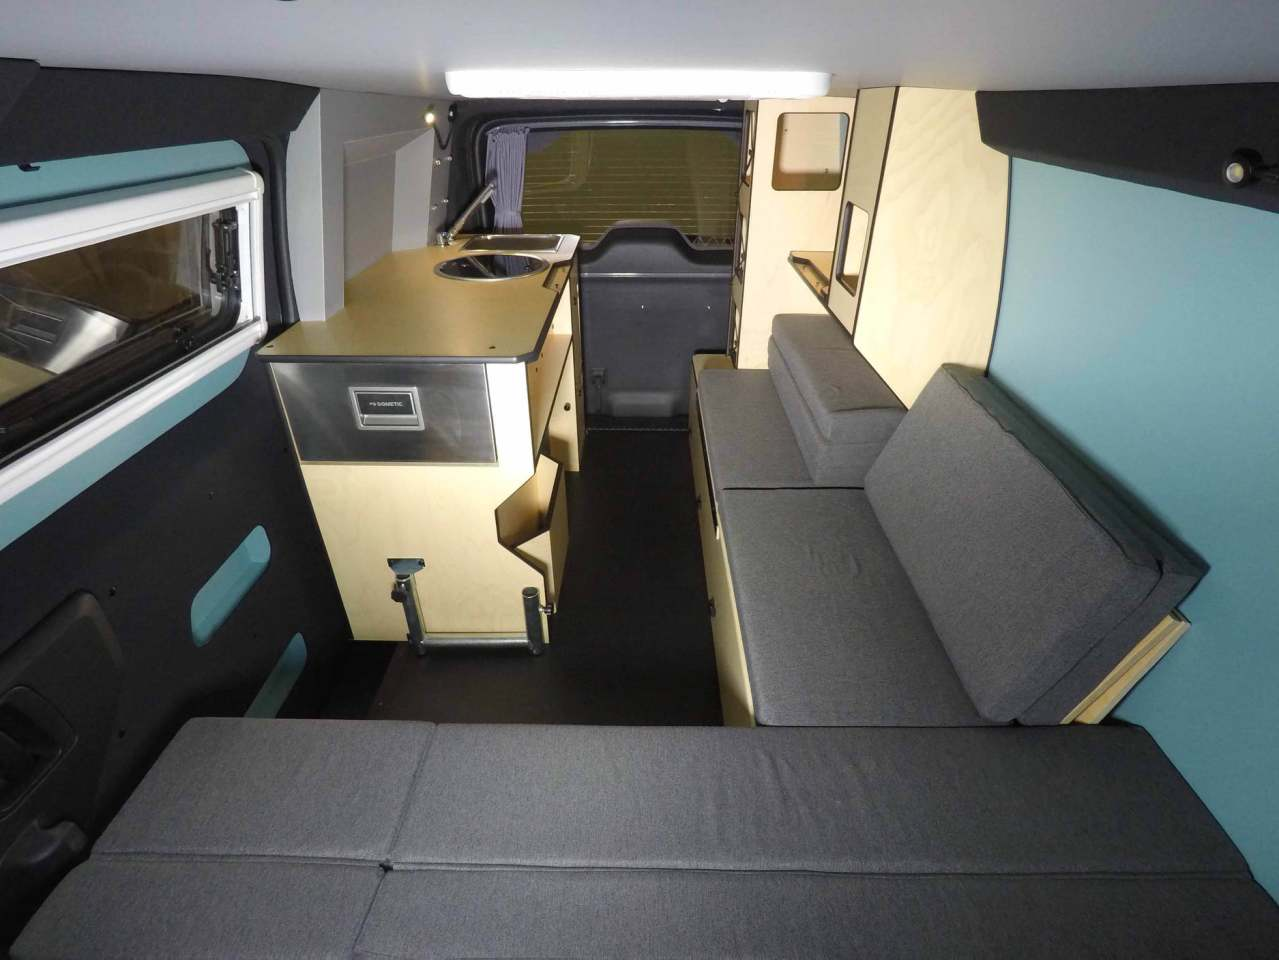 The Mobile Base Camp interior is filled out with an L-shaped sofa, storage shelving and a kitchen block